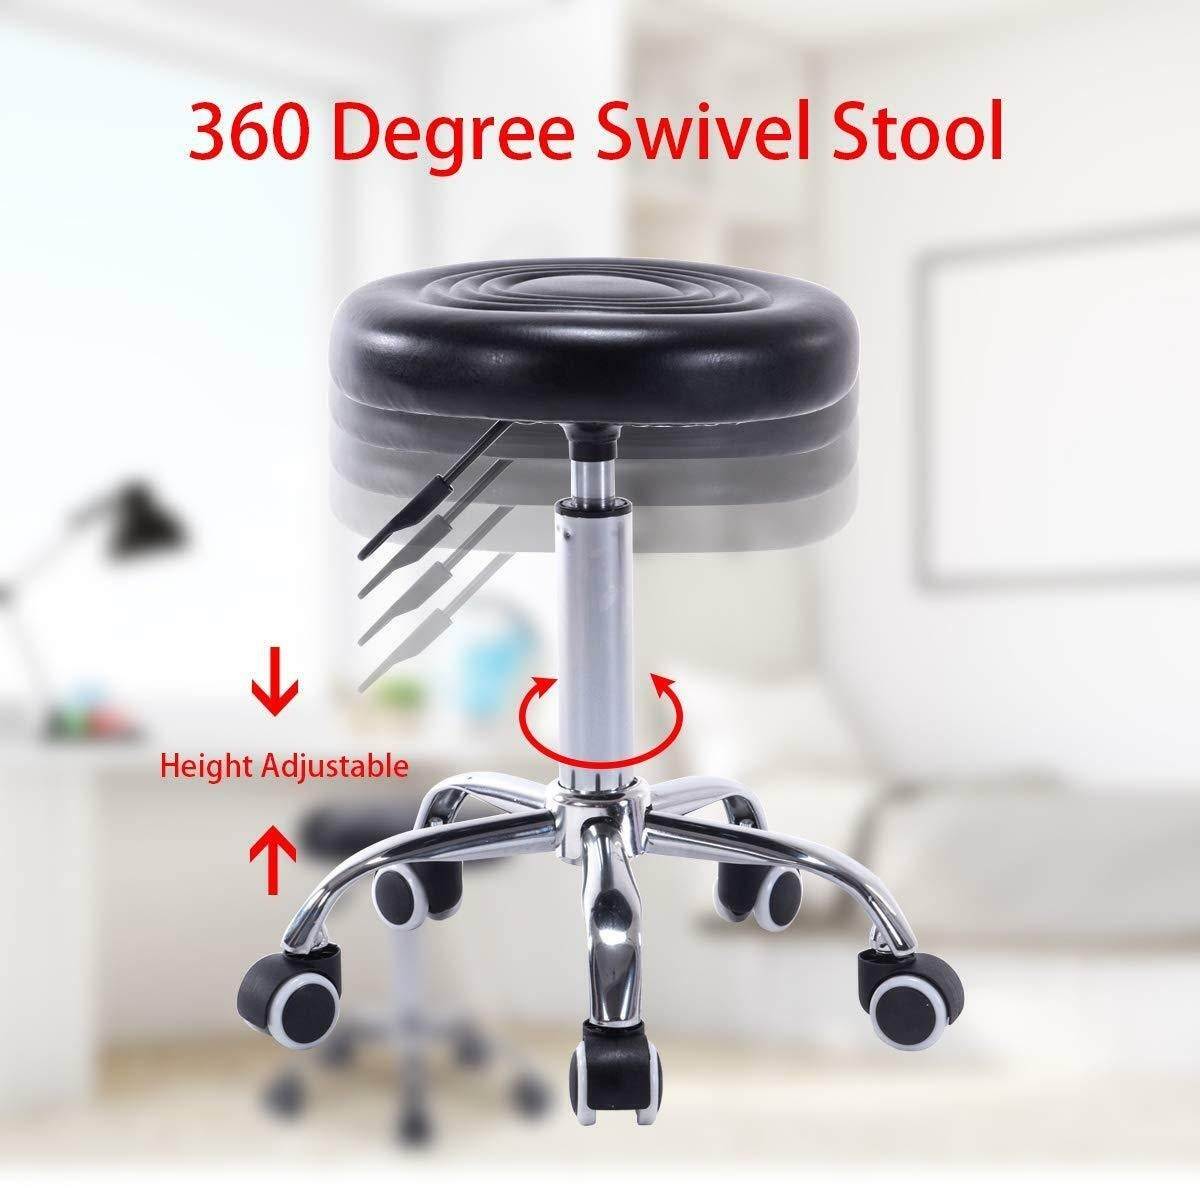 Wondrous Gymax Set Of 2 Black Adjustable Hydraulic Rolling Swivel Stool Salon Massage Spa Caraccident5 Cool Chair Designs And Ideas Caraccident5Info